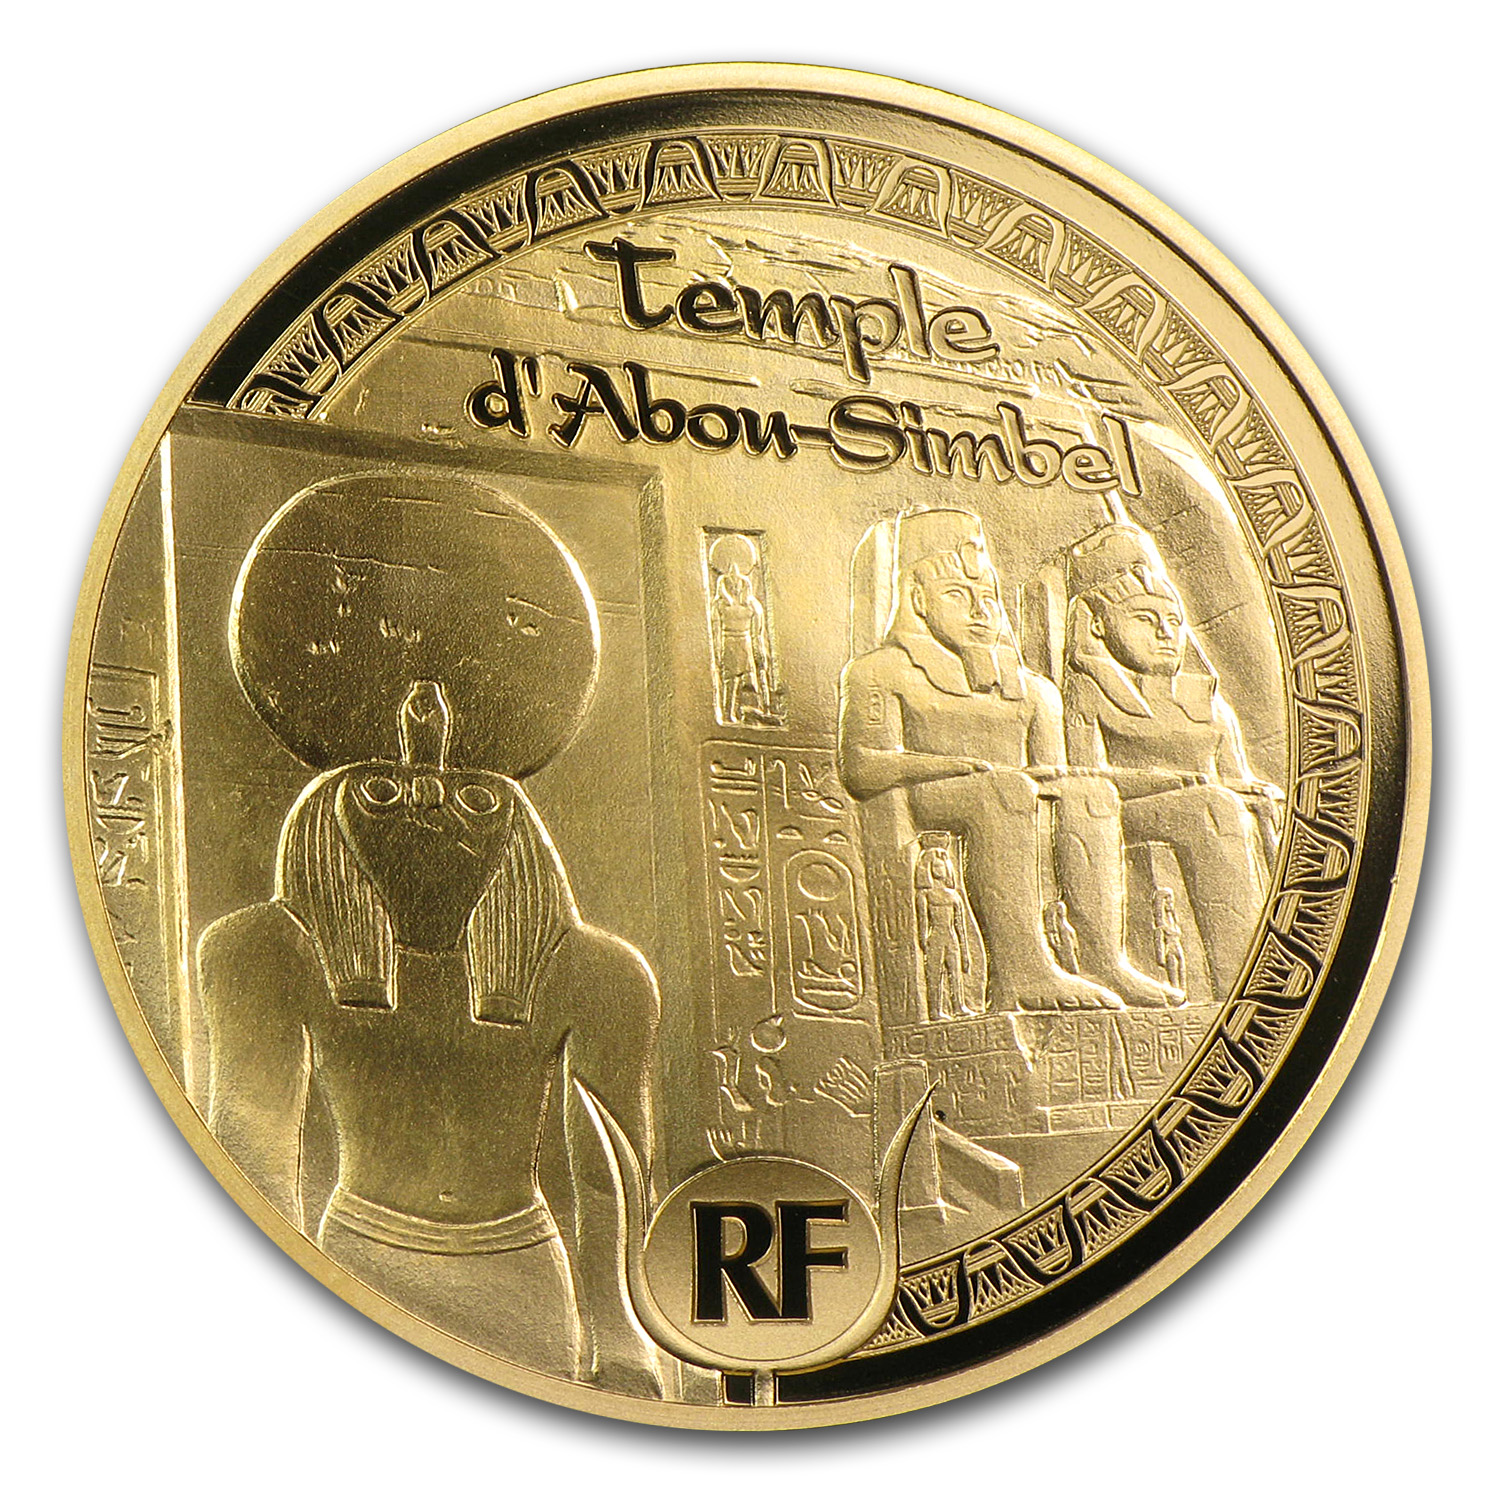 2012 1/4 oz Proof Gold UNESCO €50 (Egyptian Heritage Abu Simbel)